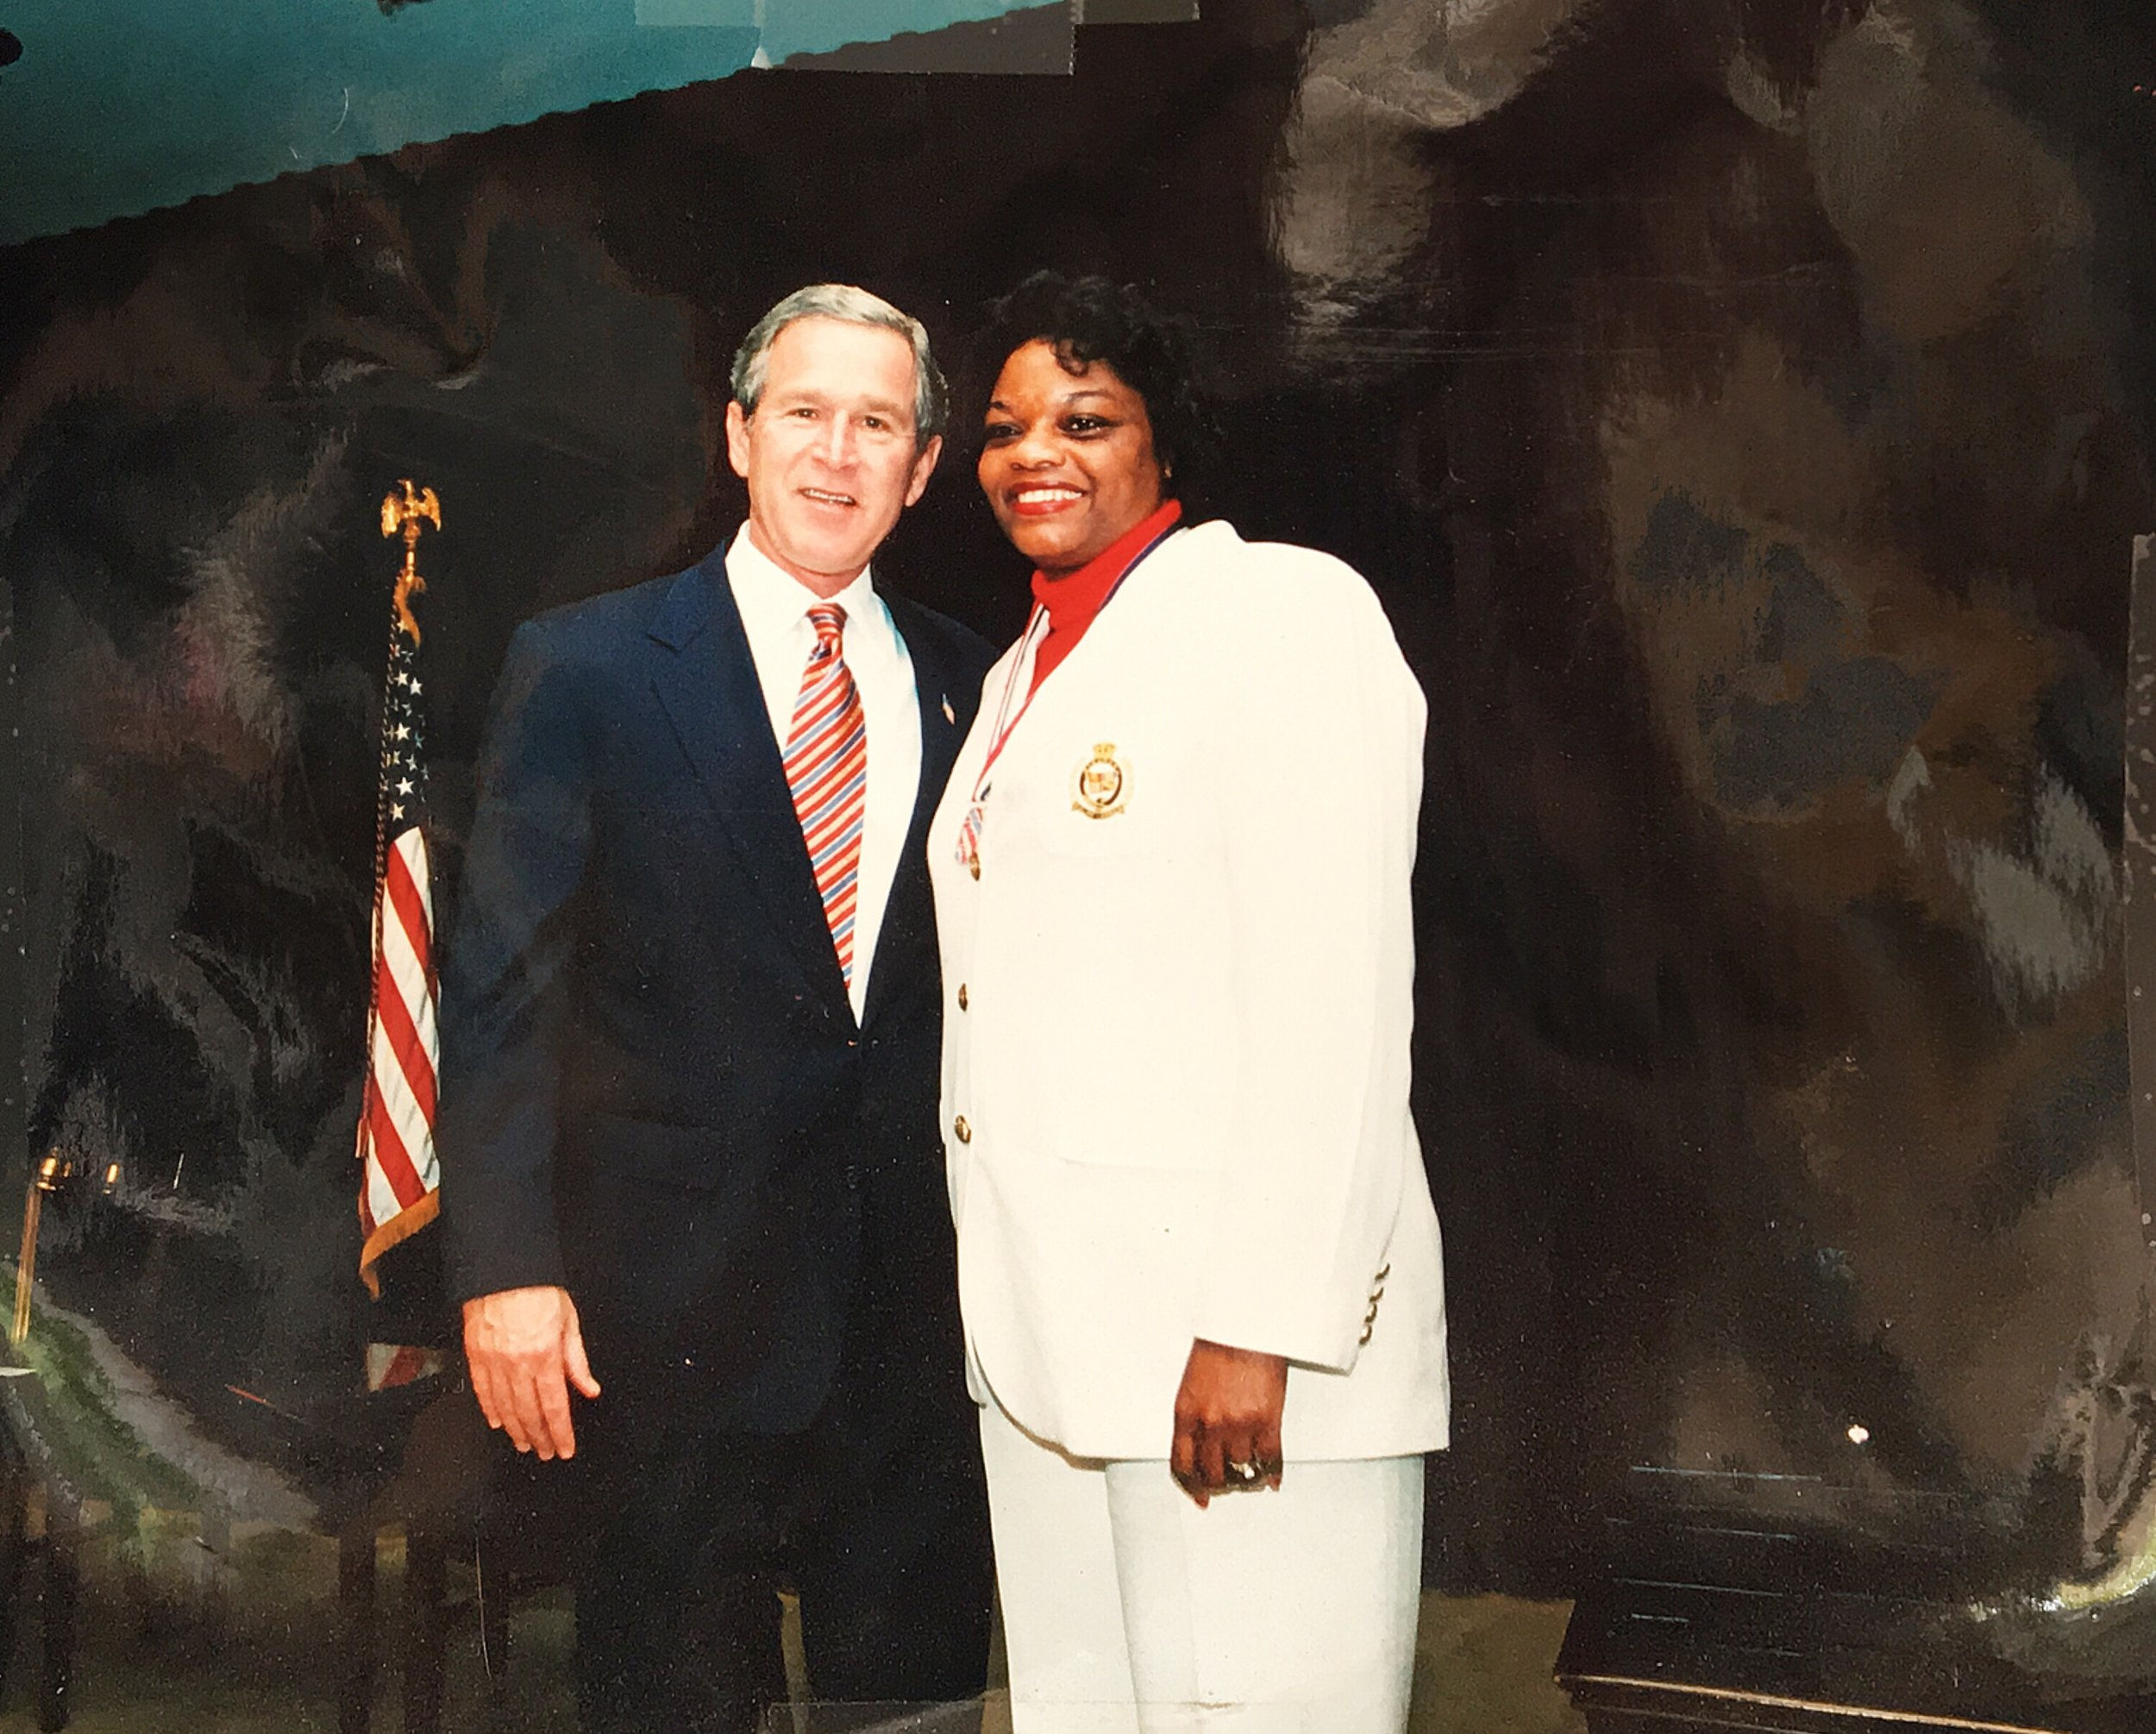 Melanie Washington with President George W. Bush, receiving Points of Light presidential community service award